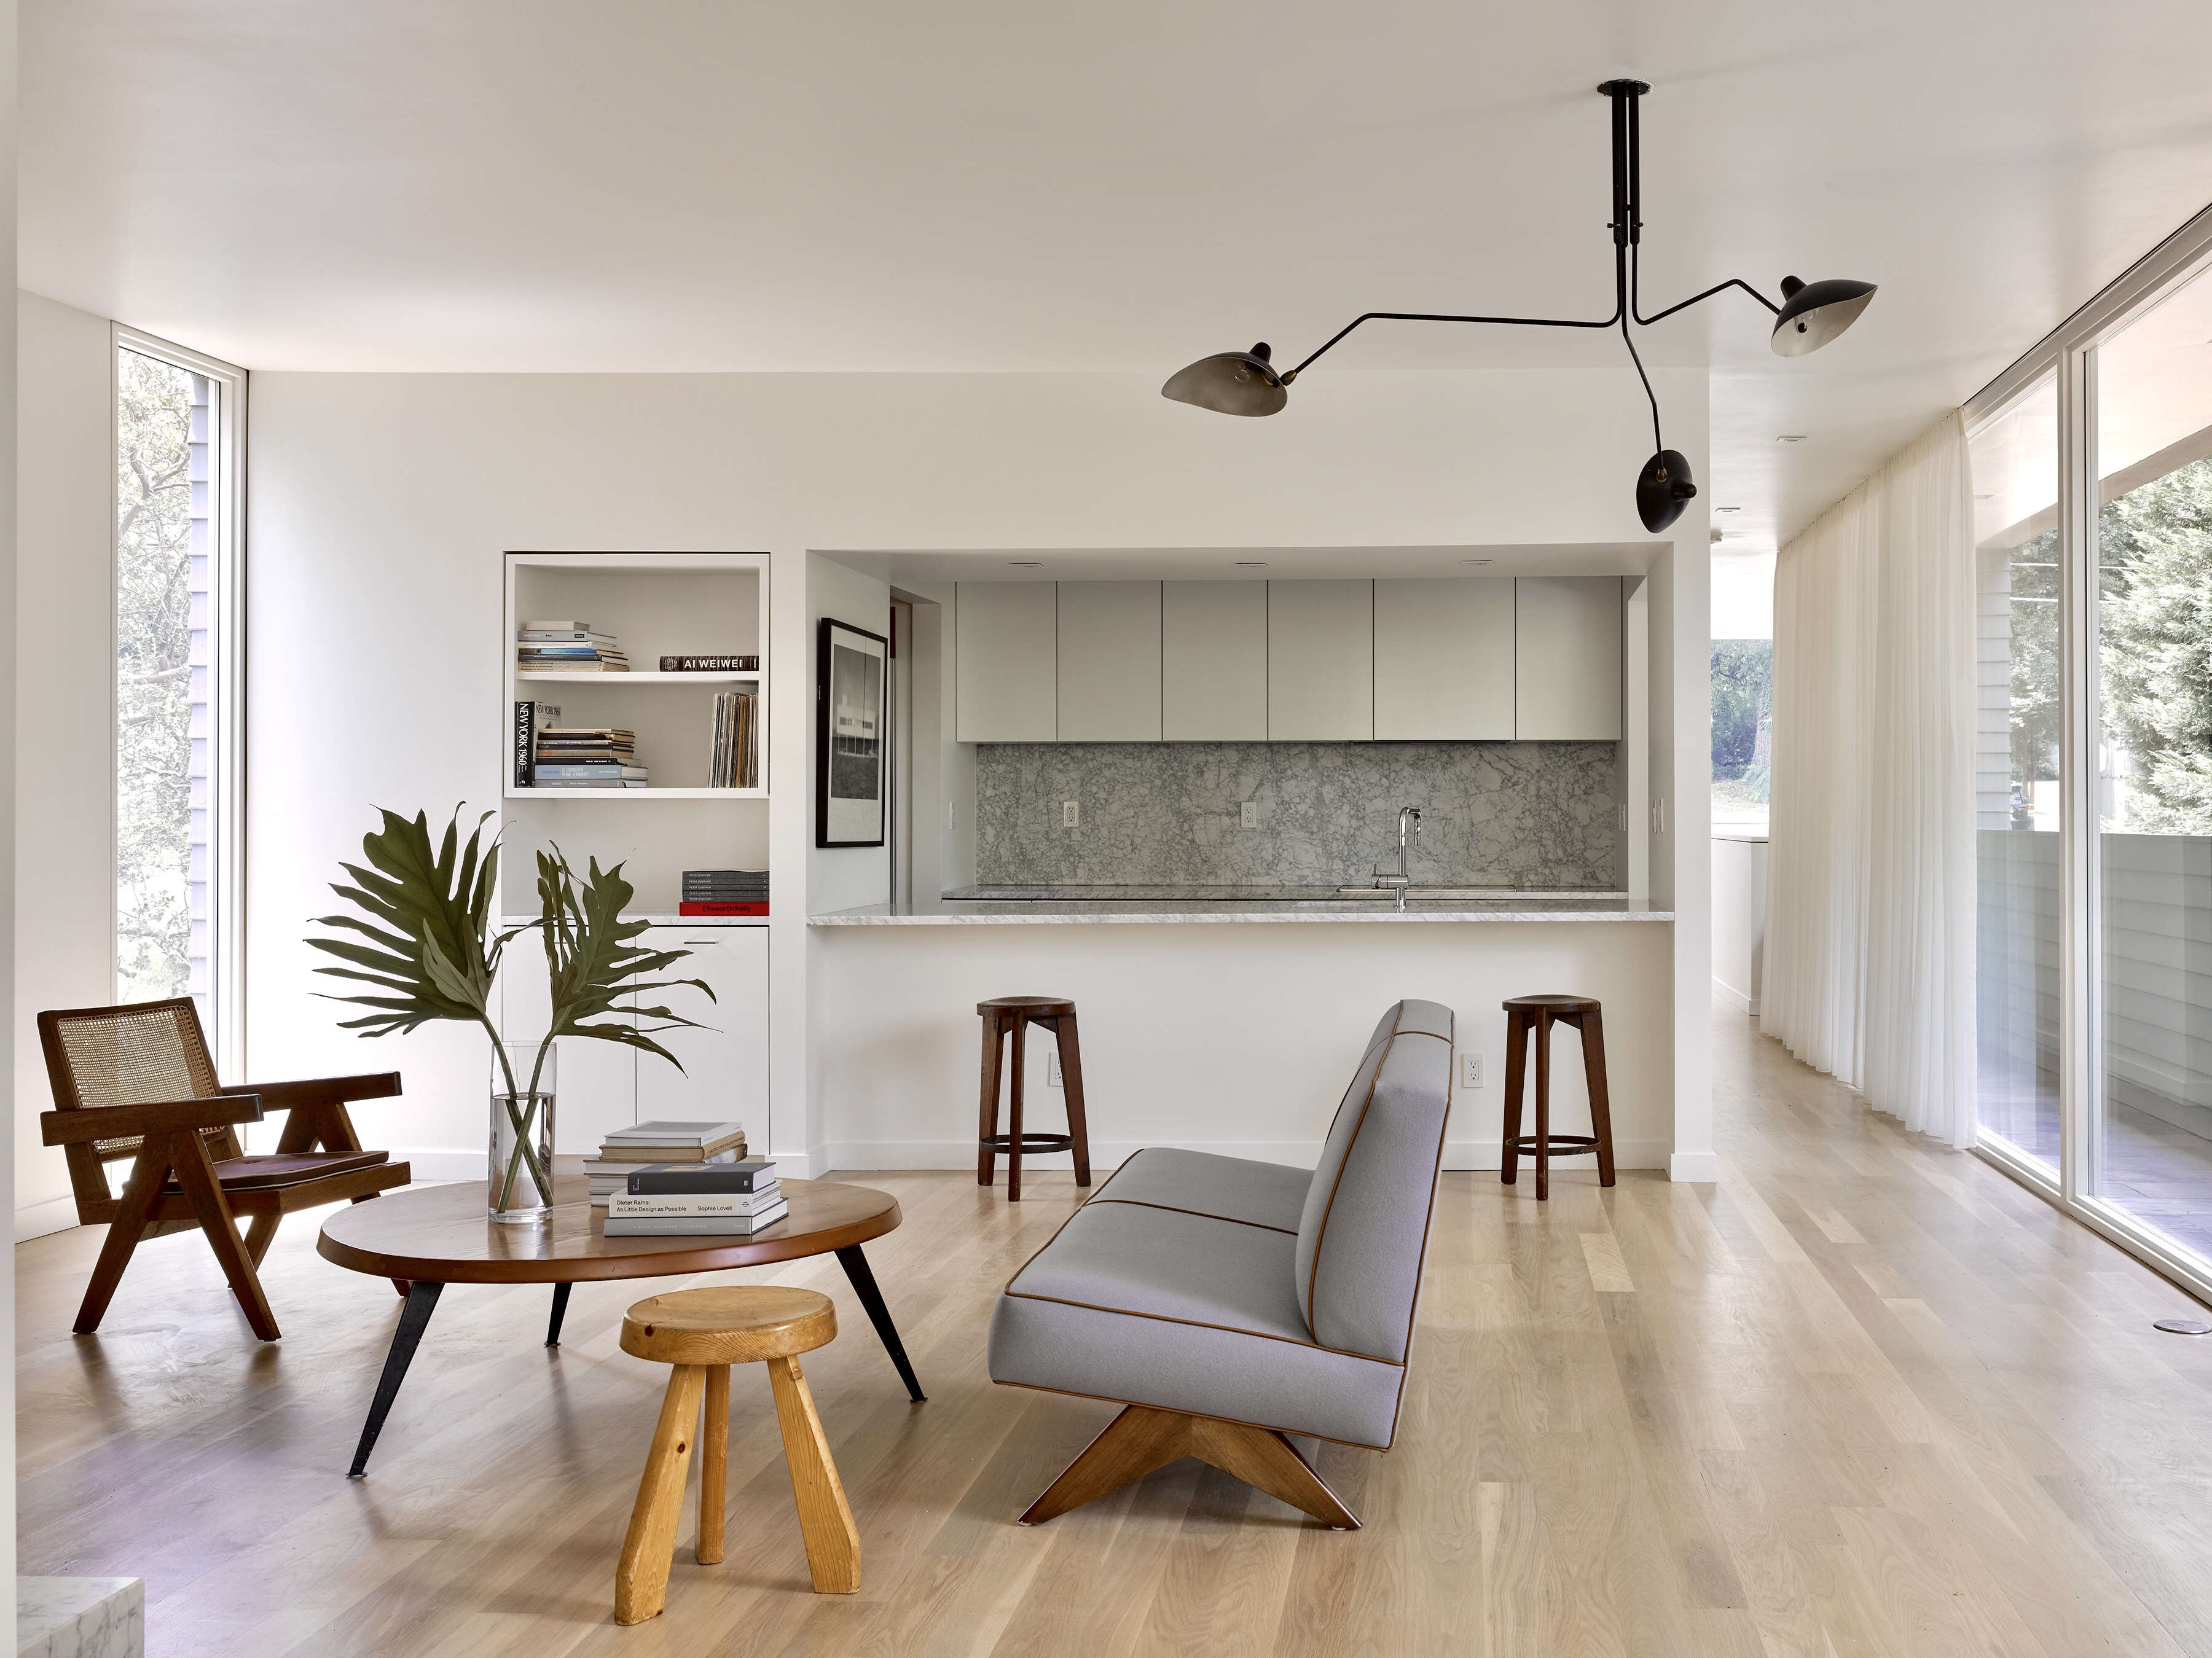 The NoDa House by Perry Poole Architects is our 2018 Home of the Year